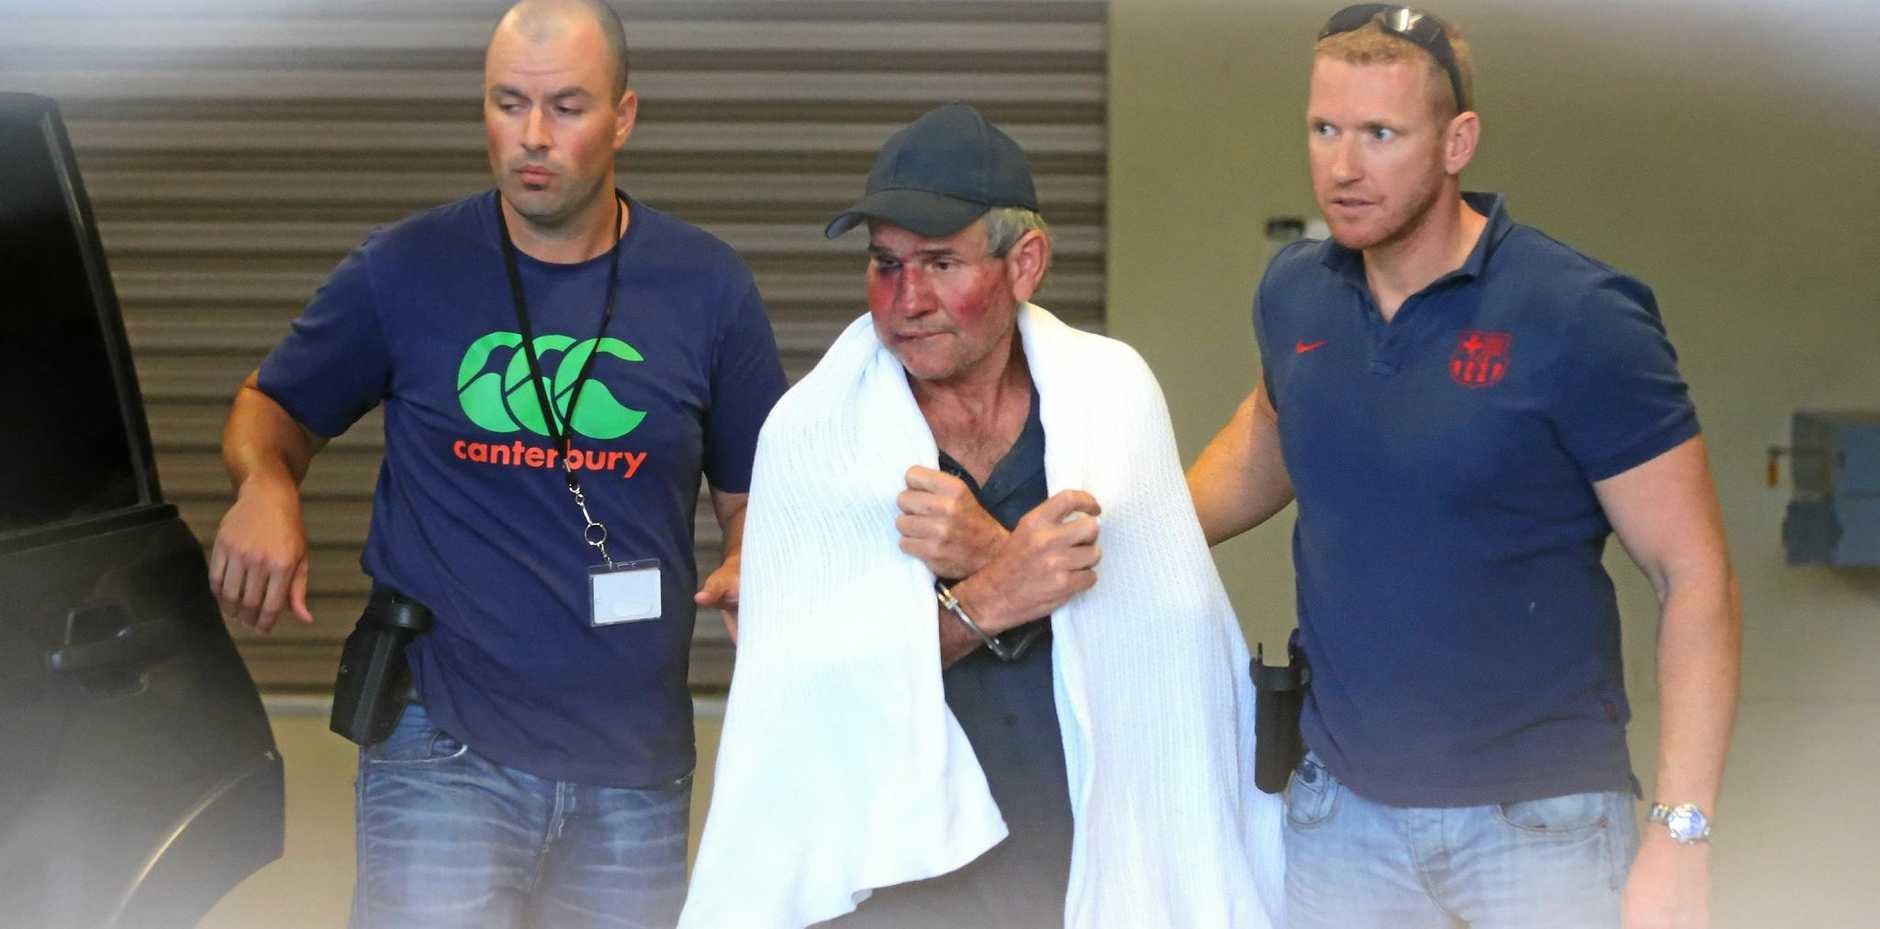 Gino Stocco is escorted by two policemen as he is taken into Dubbo police station after he and his son Mark were arrested earlier in the day in Dunedoo in north west NSW. Wednesday, Oct. 28, 2015.